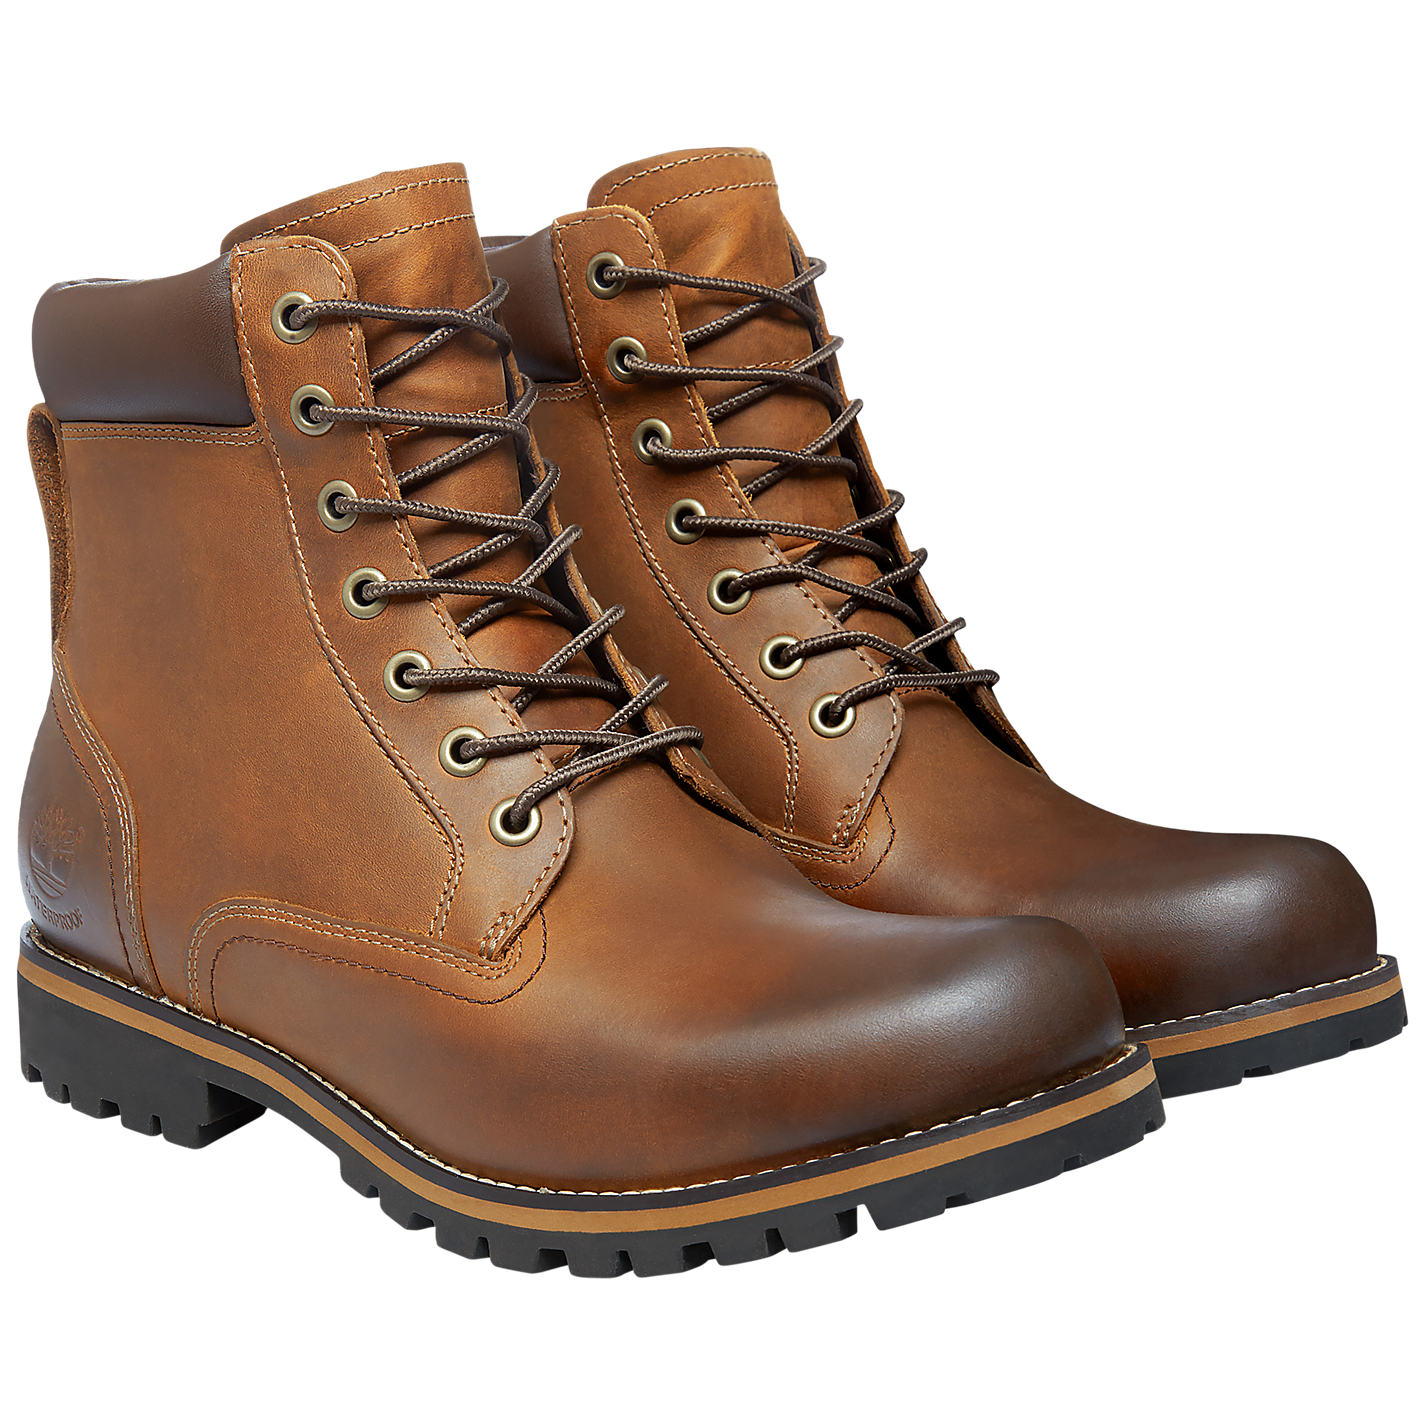 Timberland Earthkeepers Rugged 6 Inch Waterproof Plain Toe Boots Online At Johnlewis Com